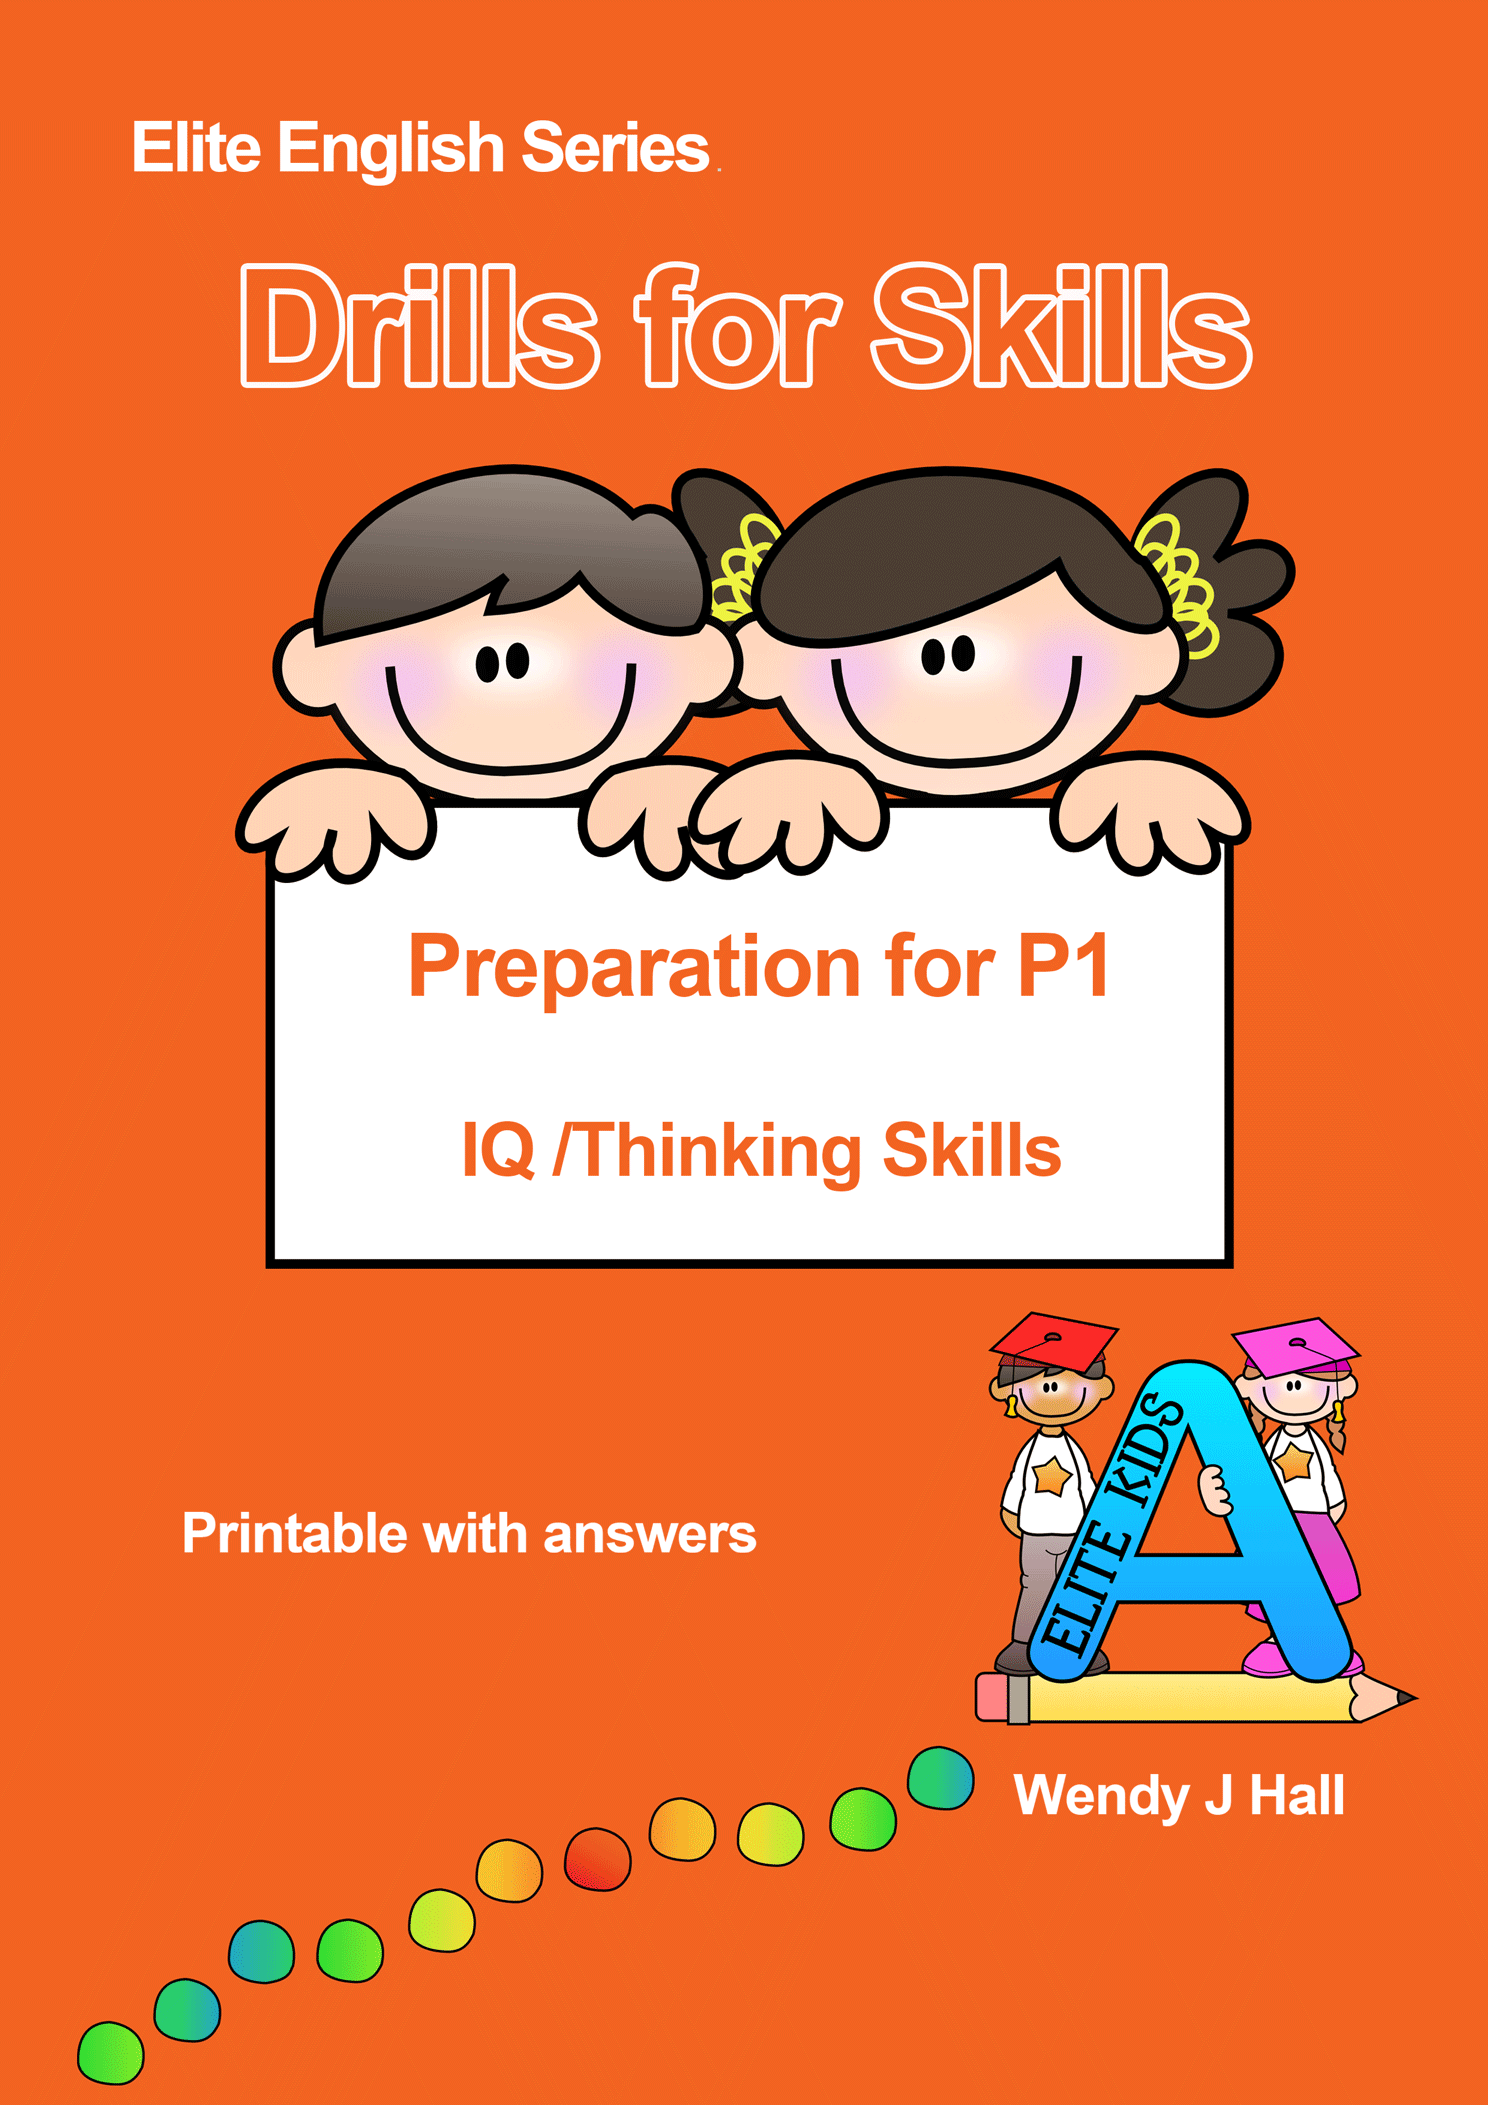 Drills for Skills - Preparation for P1 | Elite Kids Hong Kong